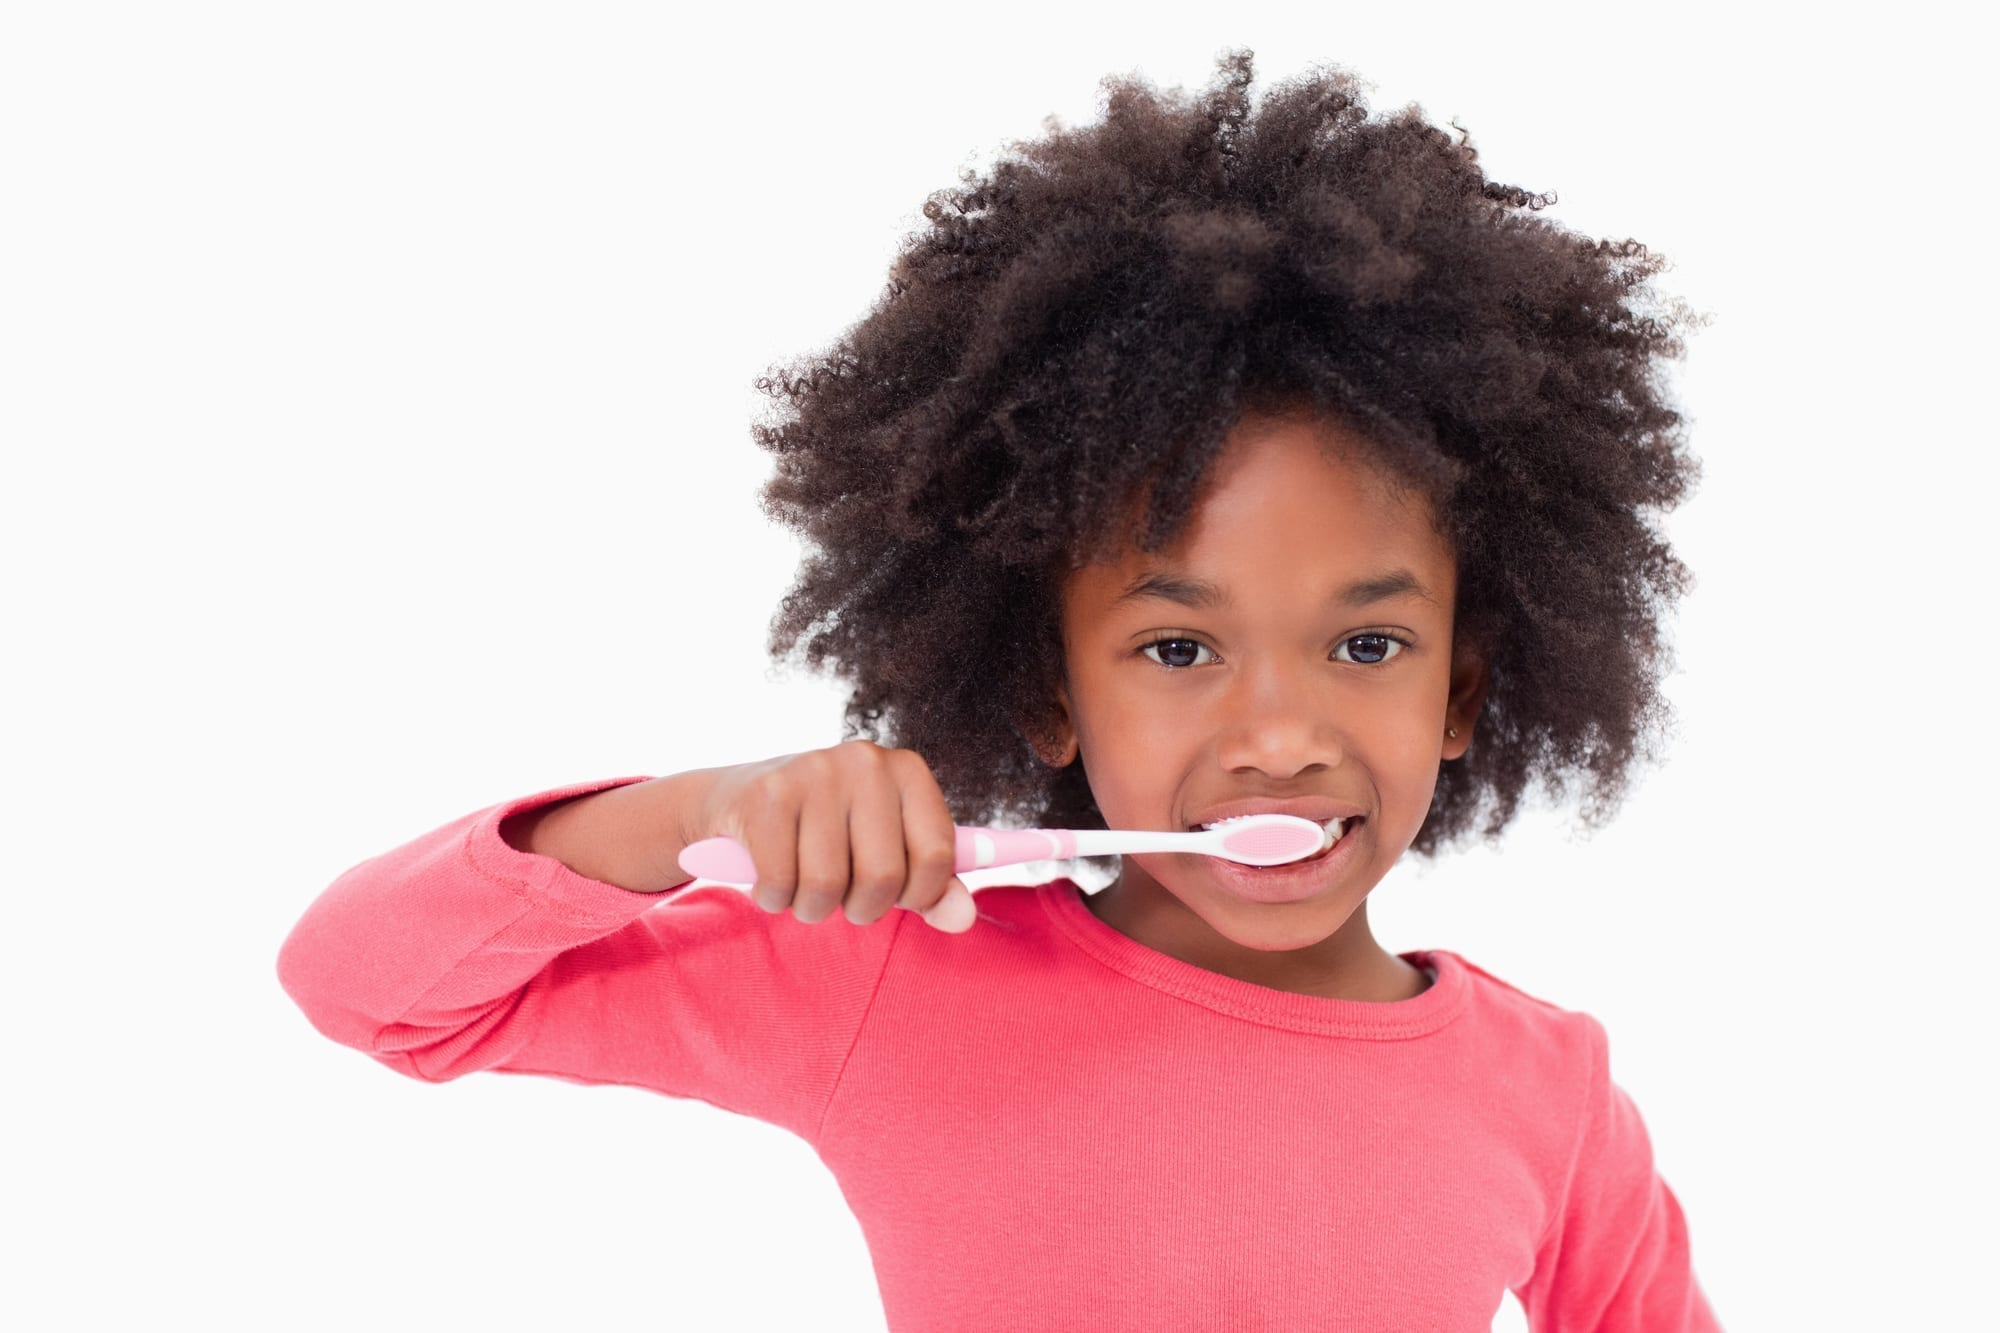 little girl brushing teeth on white background